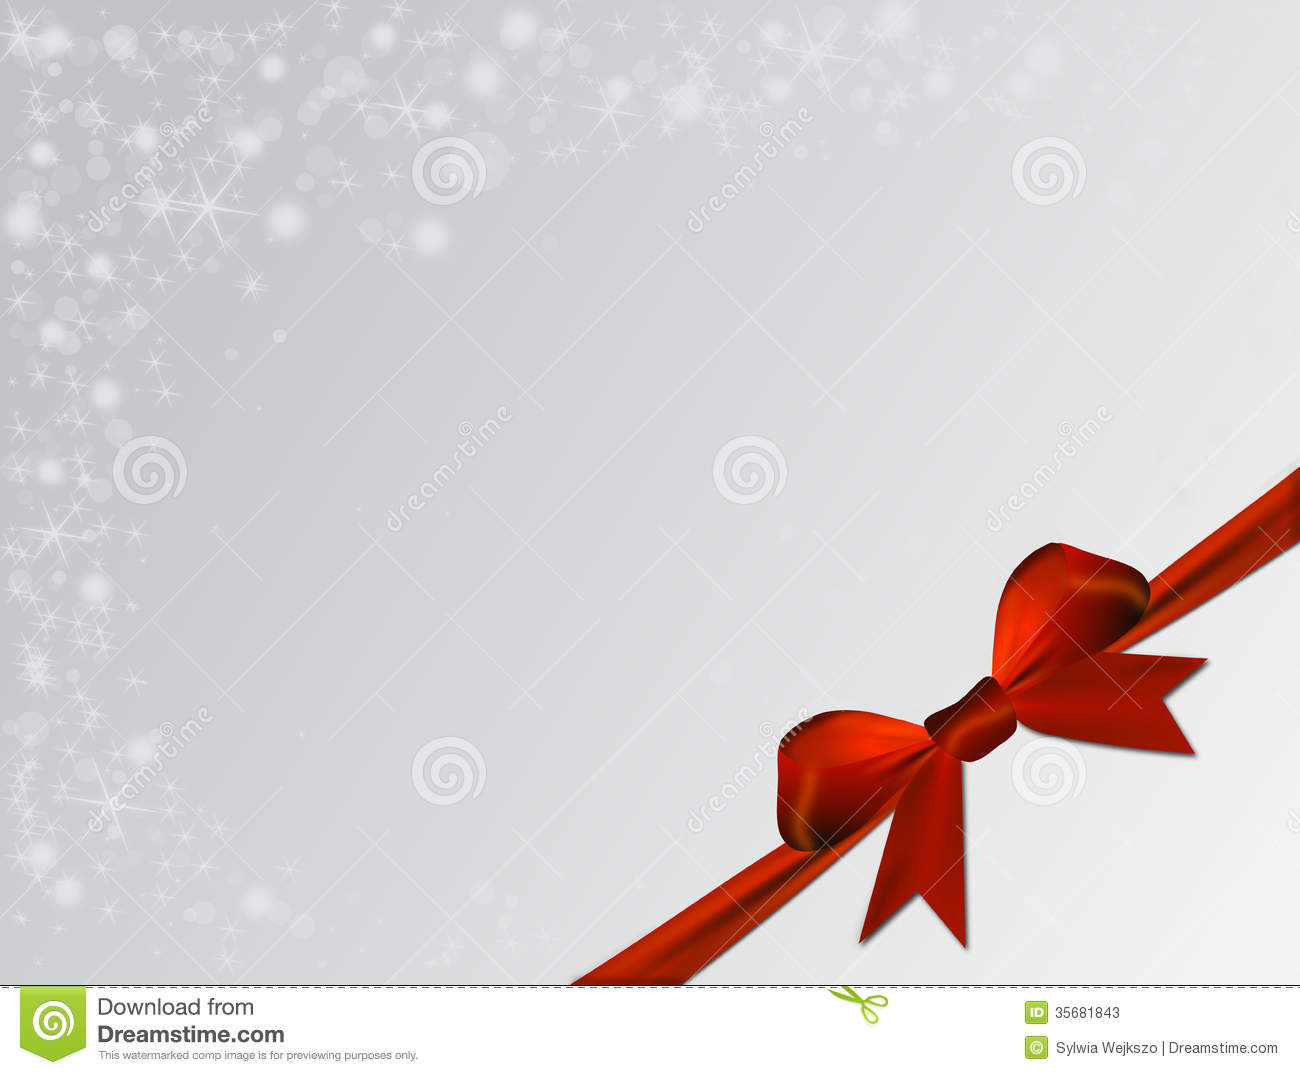 red bow background tumblr - photo #2